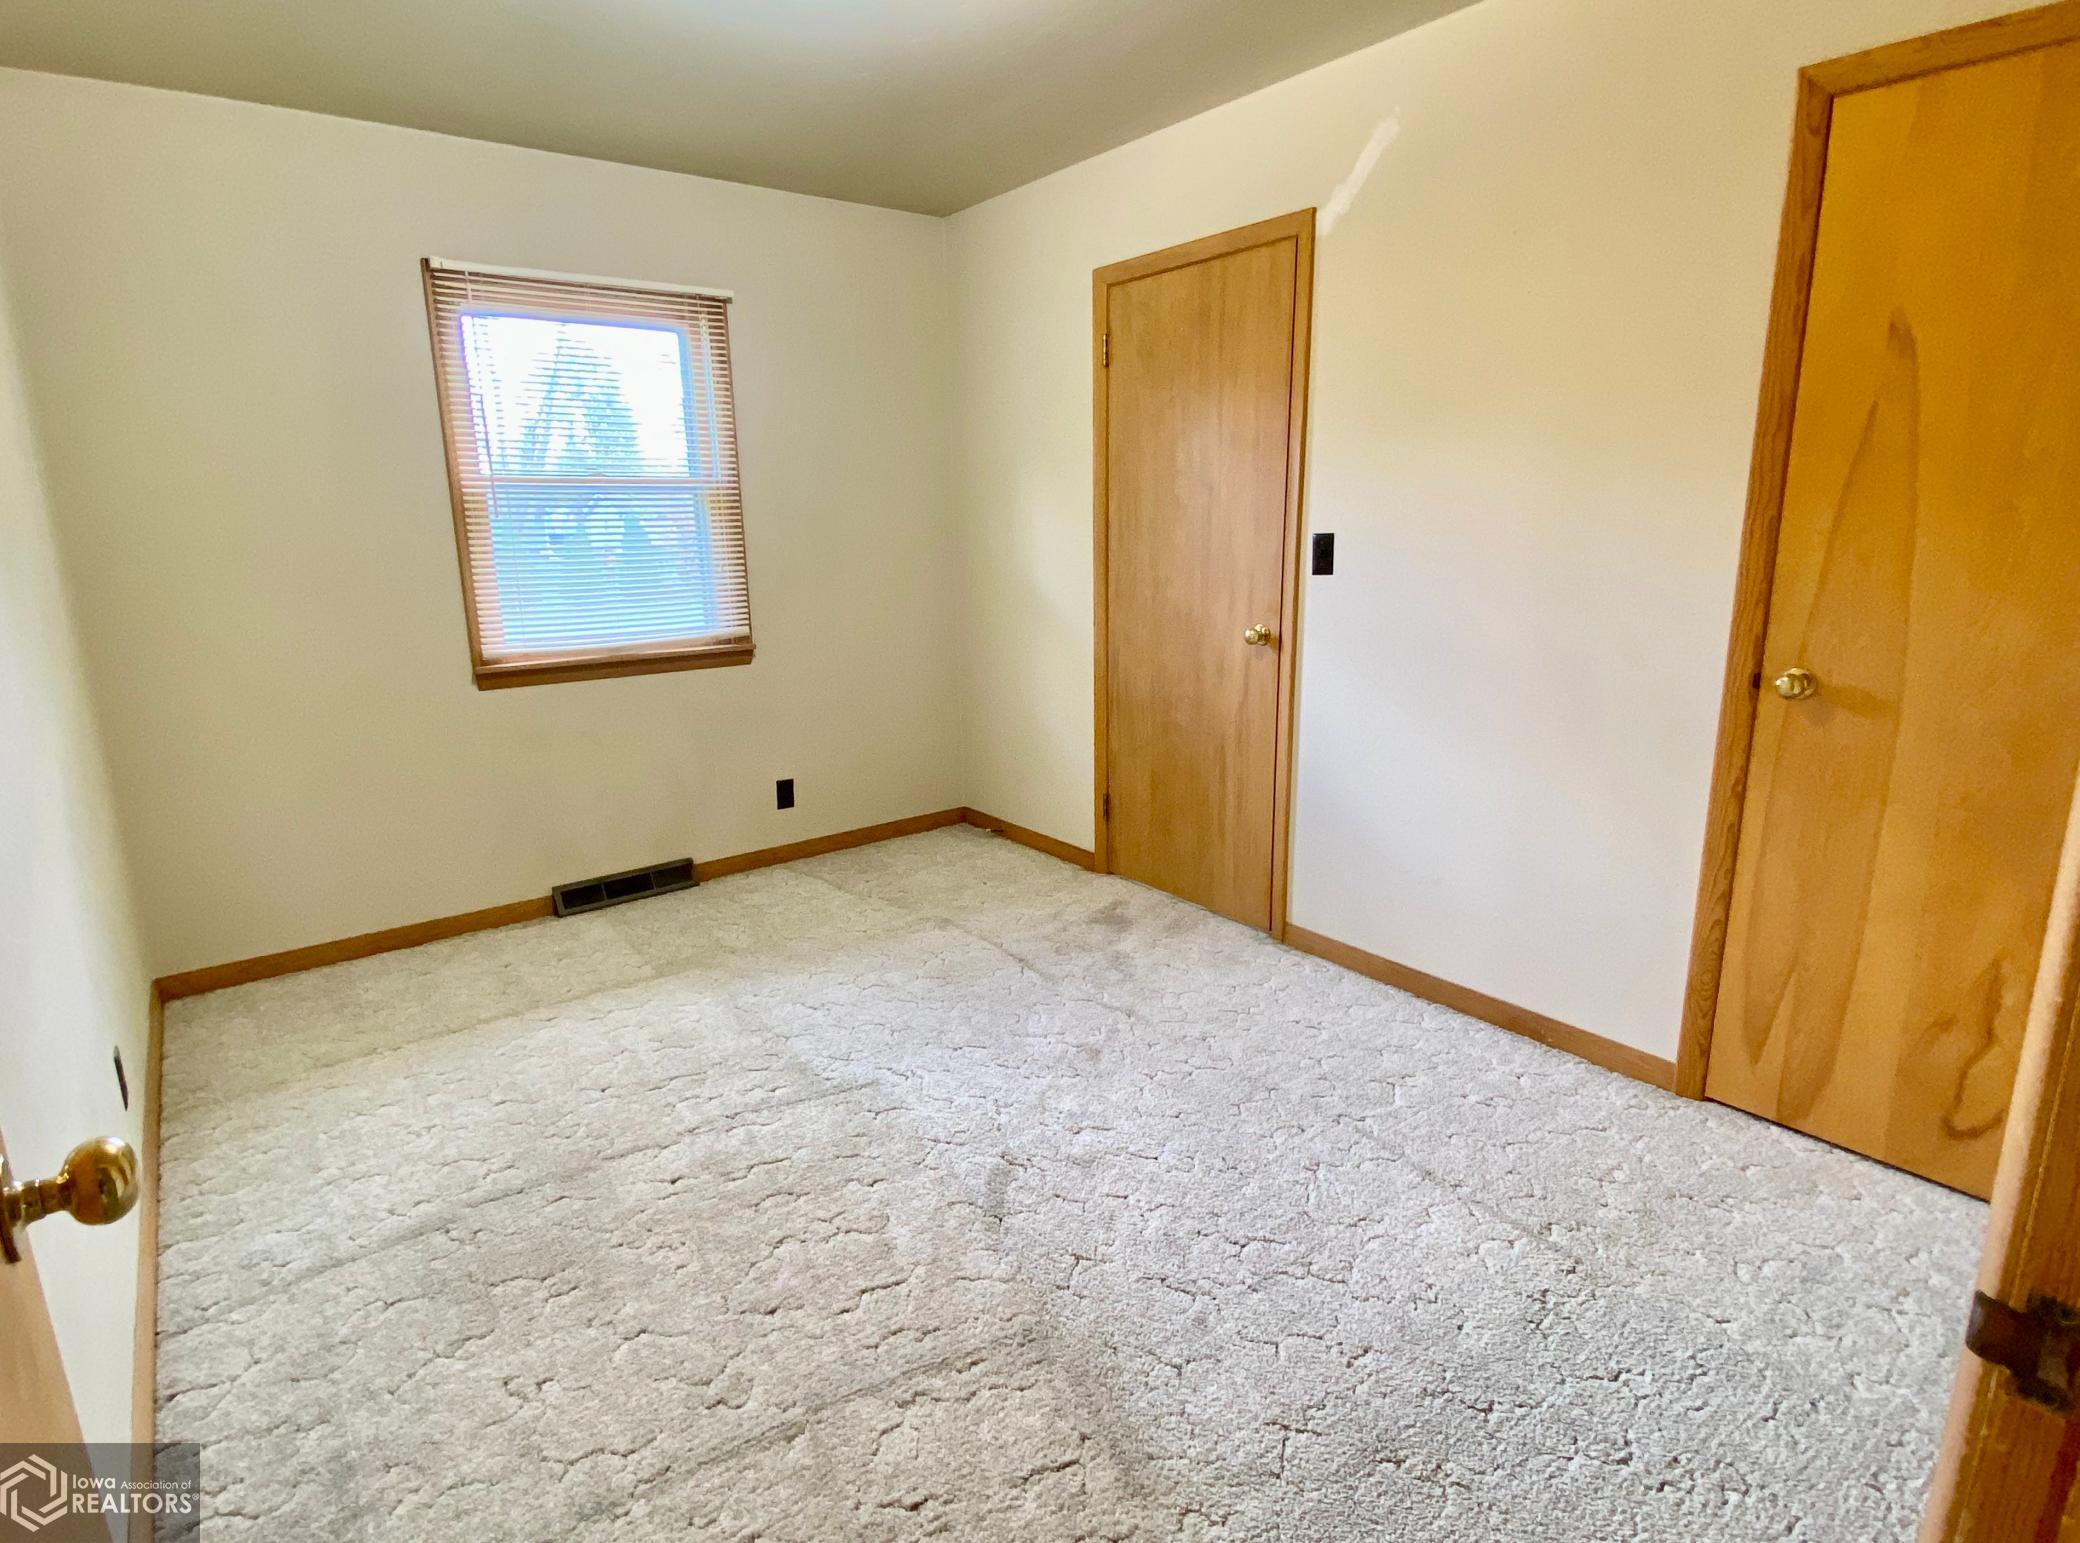 1703 7th, Grinnell, Iowa 50112-8416, 3 Bedrooms Bedrooms, ,1 BathroomBathrooms,Single Family,For Sale,7th,5674870